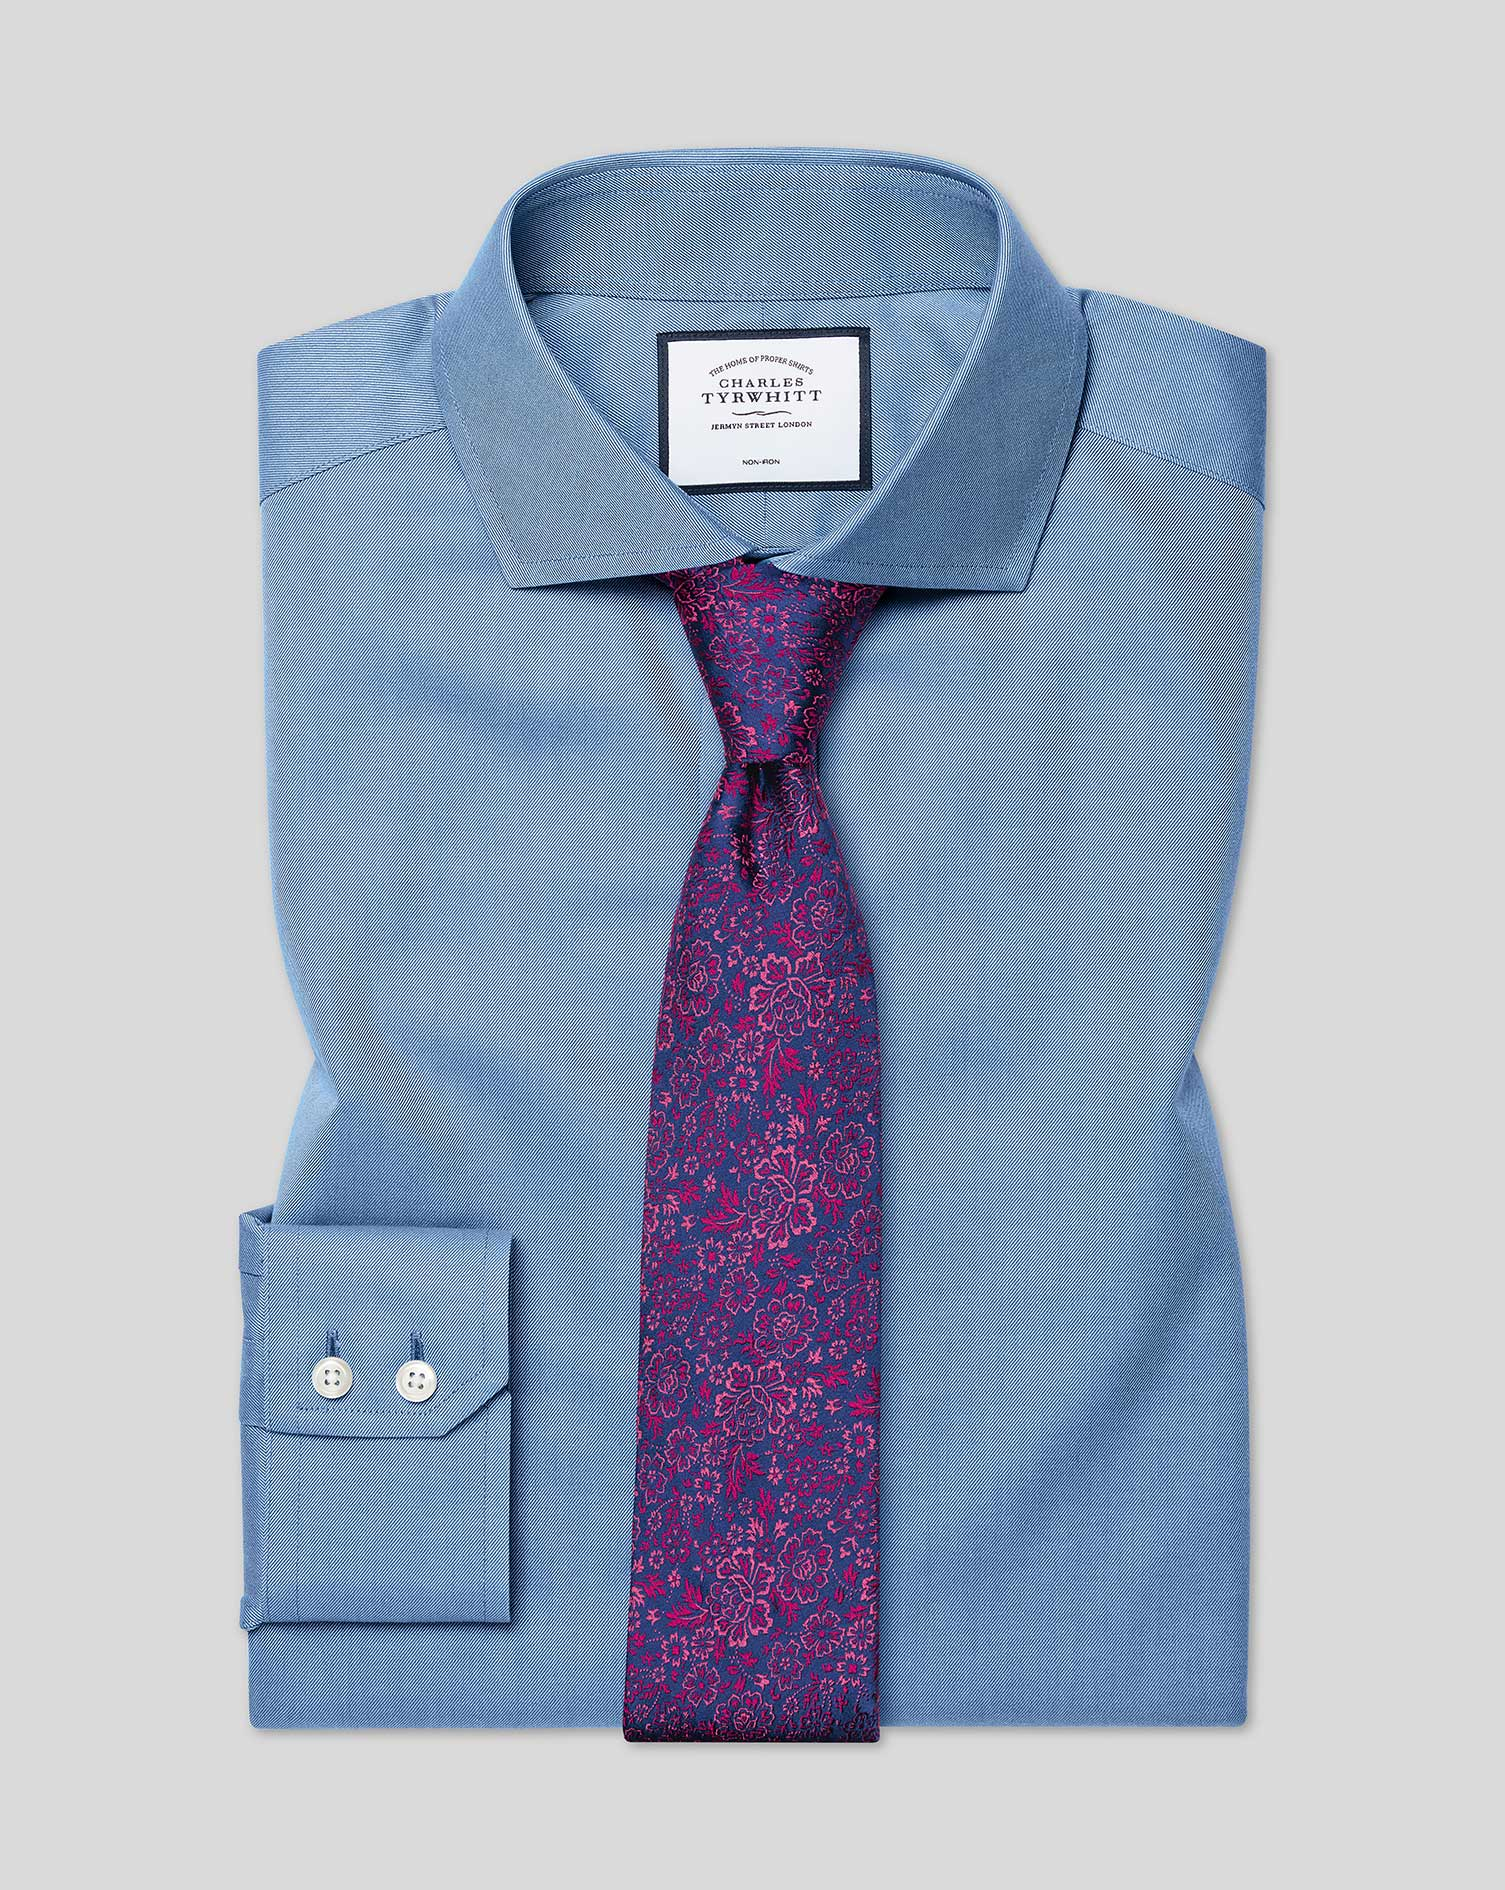 Slim Fit Non-Iron Cutaway Collar Twill Blue Cotton Formal Shirt Double Cuff Size 17.5/34 by Charles